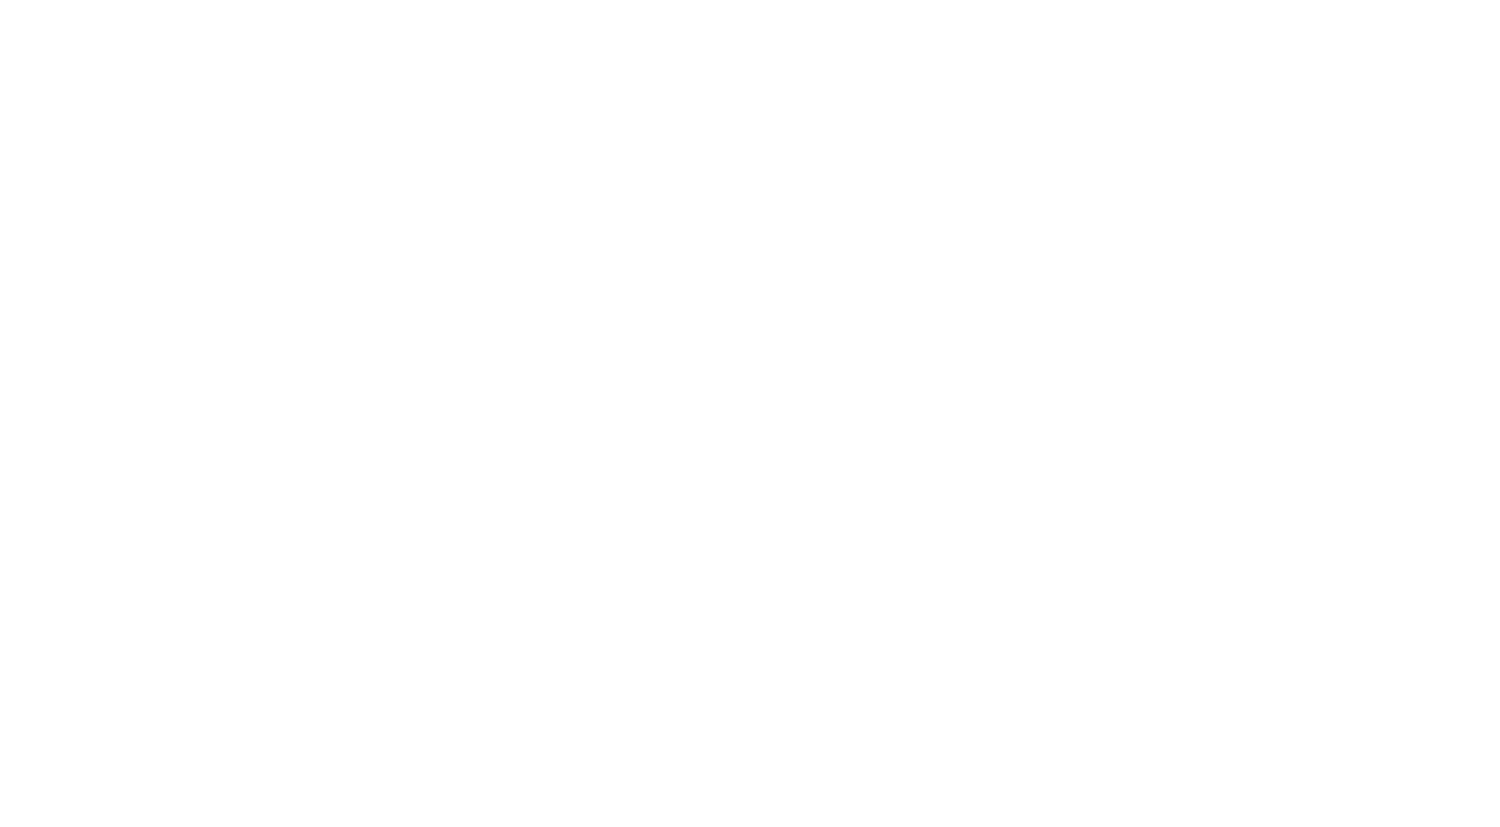 Appleyard Productions